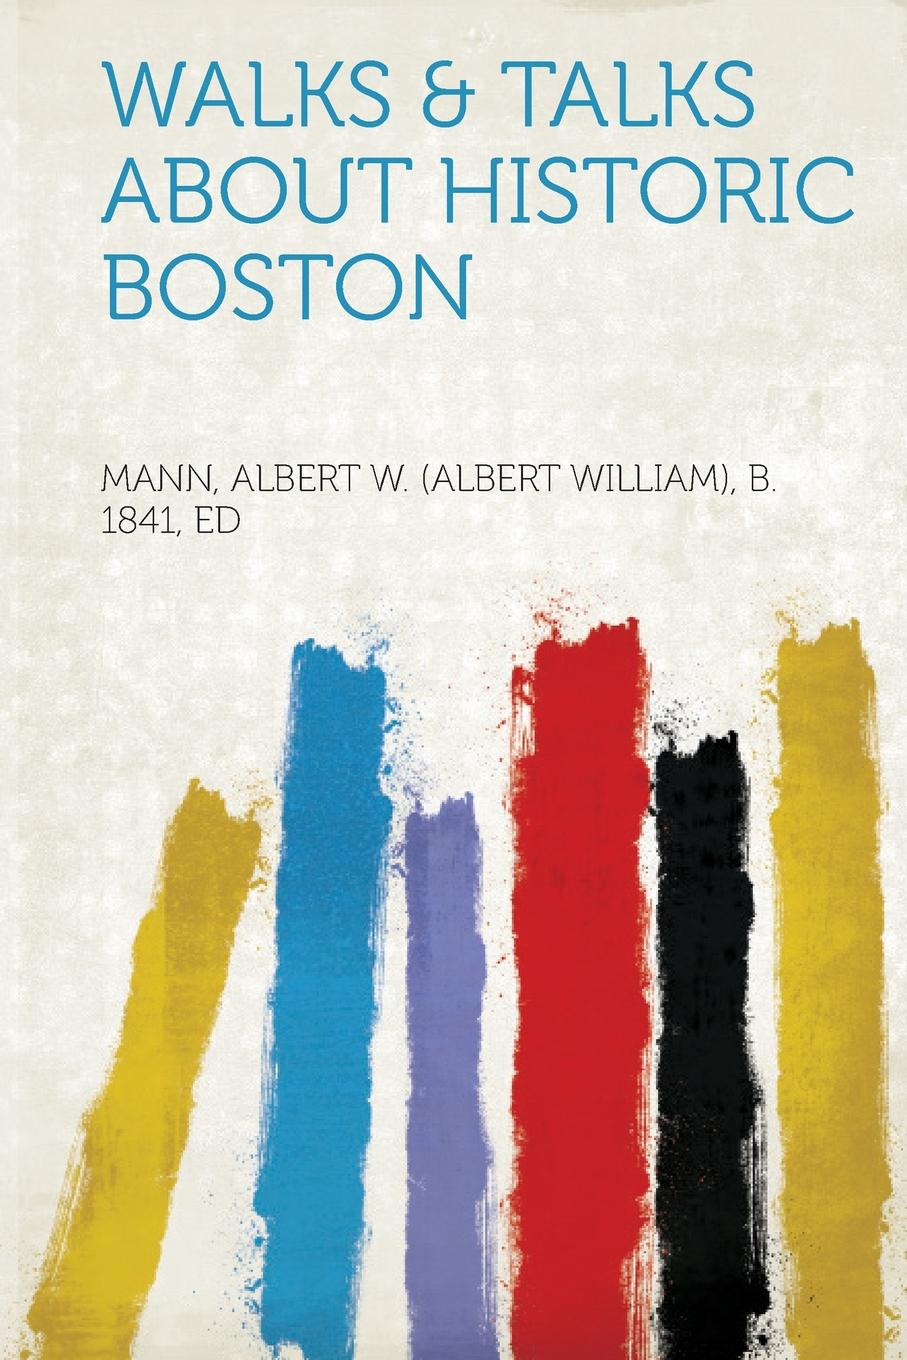 Mann Albert W. (Albert William) B. Ed Walks . Talks about Historic Boston